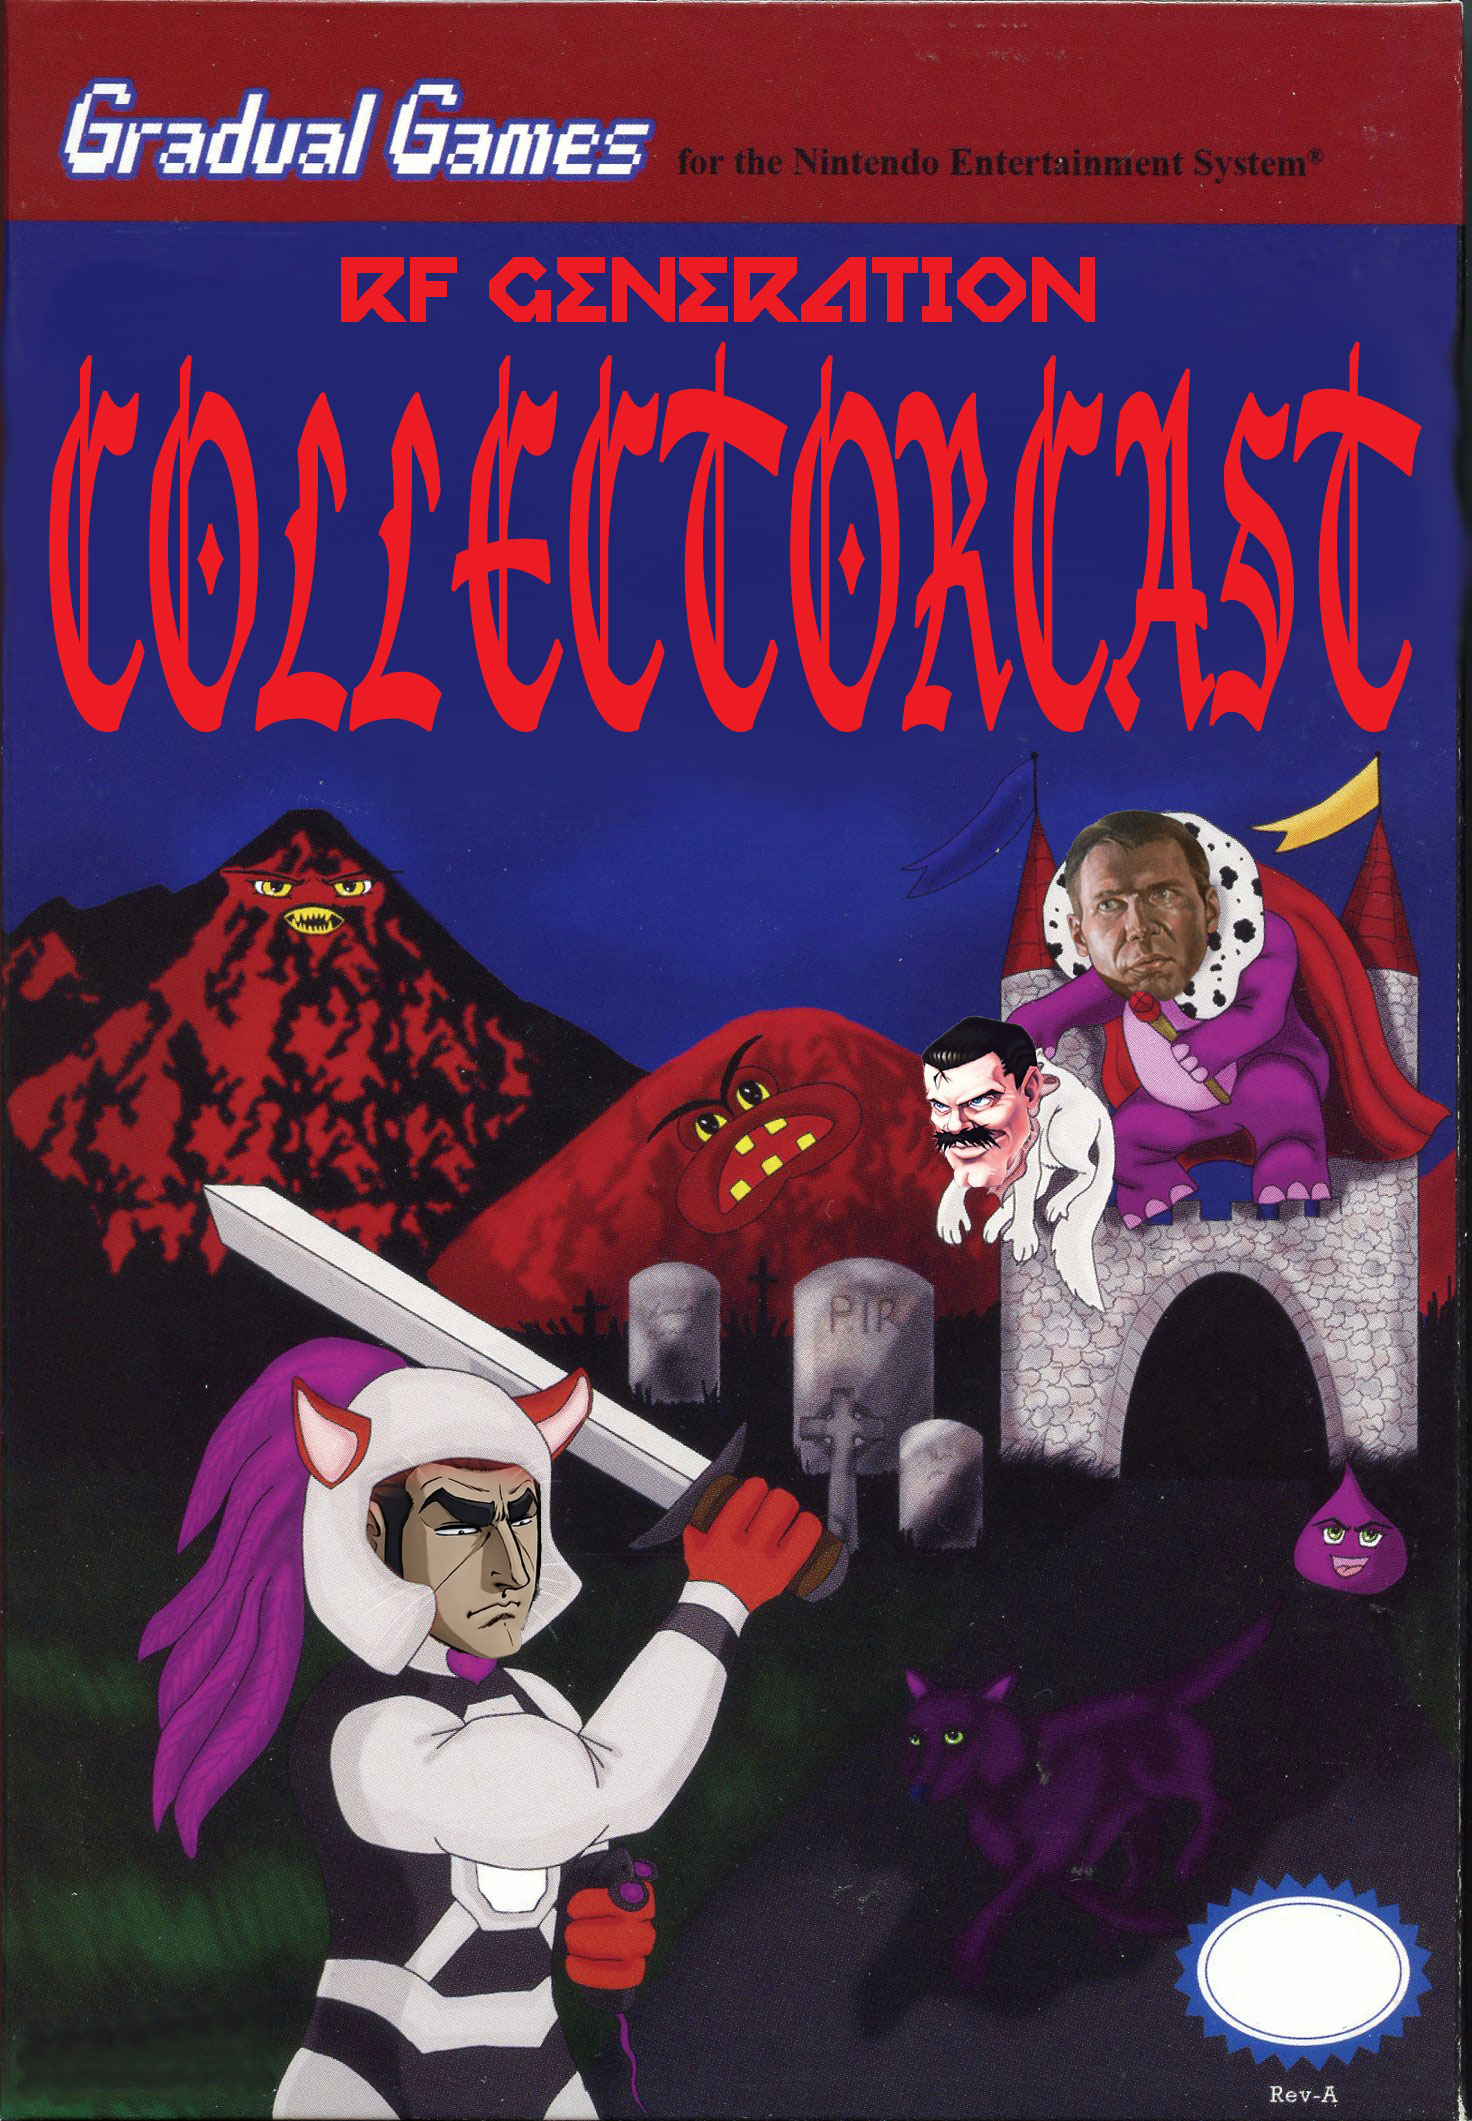 Collectorcast Episode 14: Storming the Podcatsle